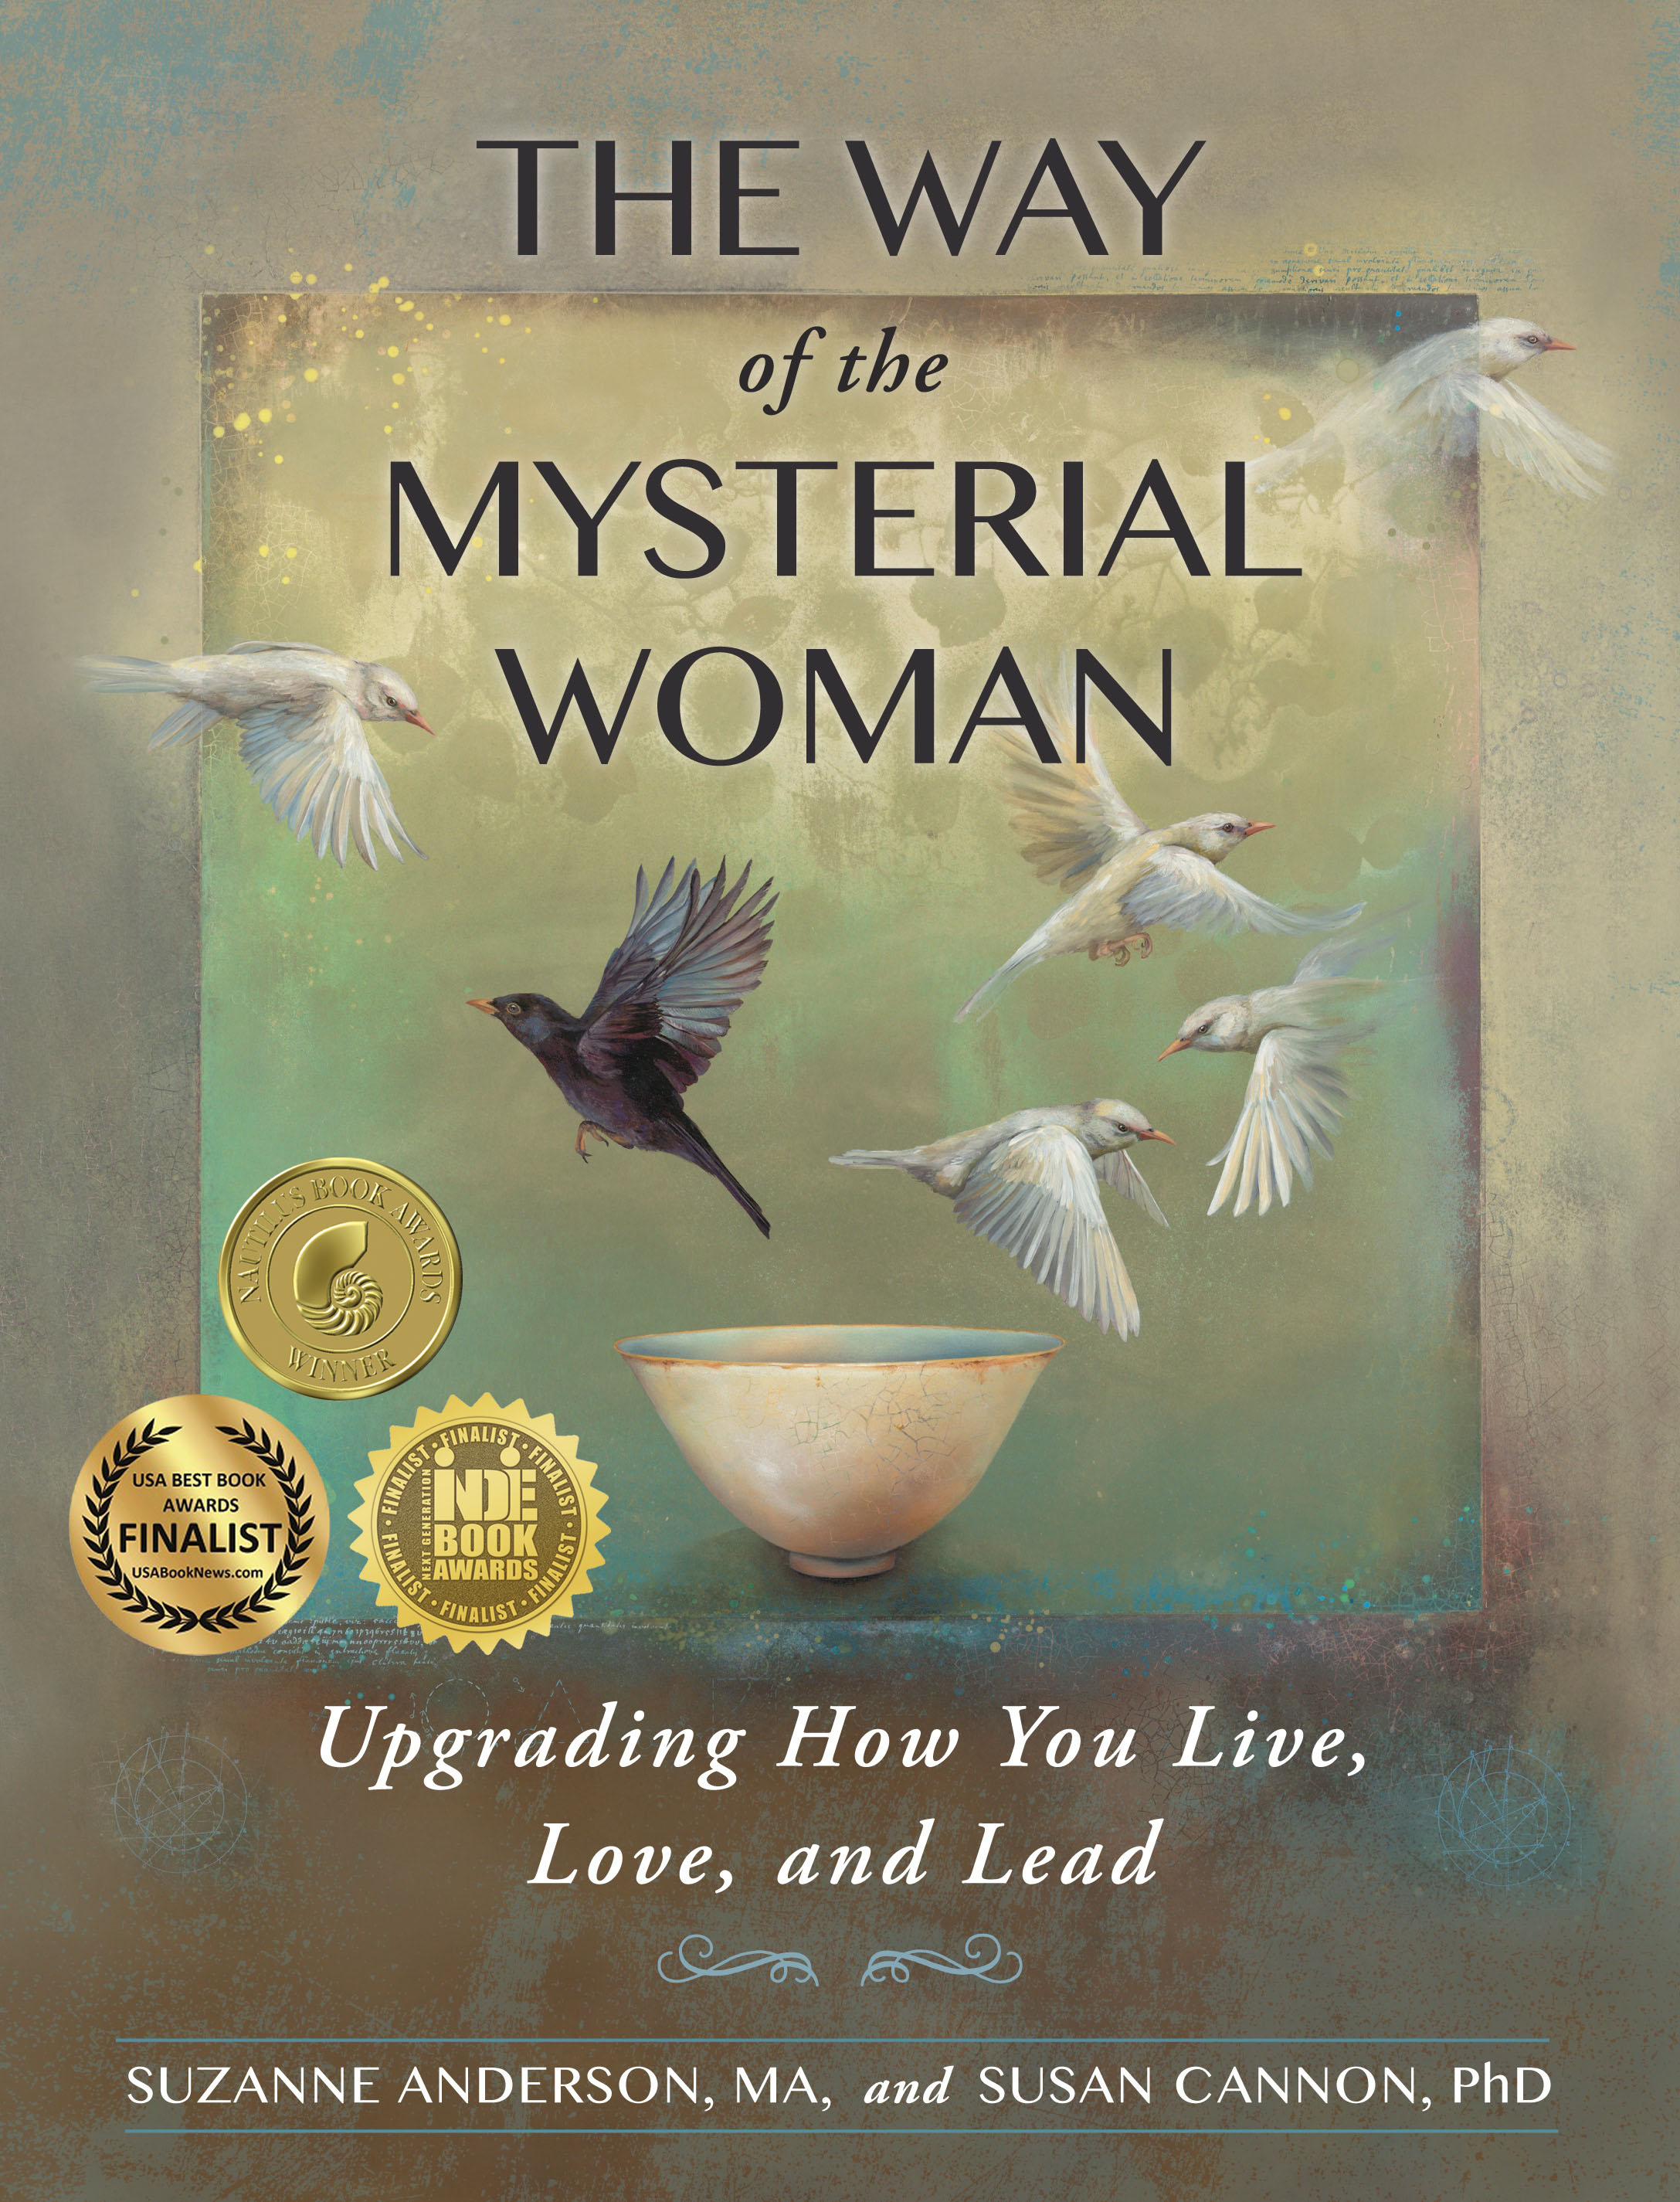 the-Way-of-the-Mysterial-Woman-medallion.png